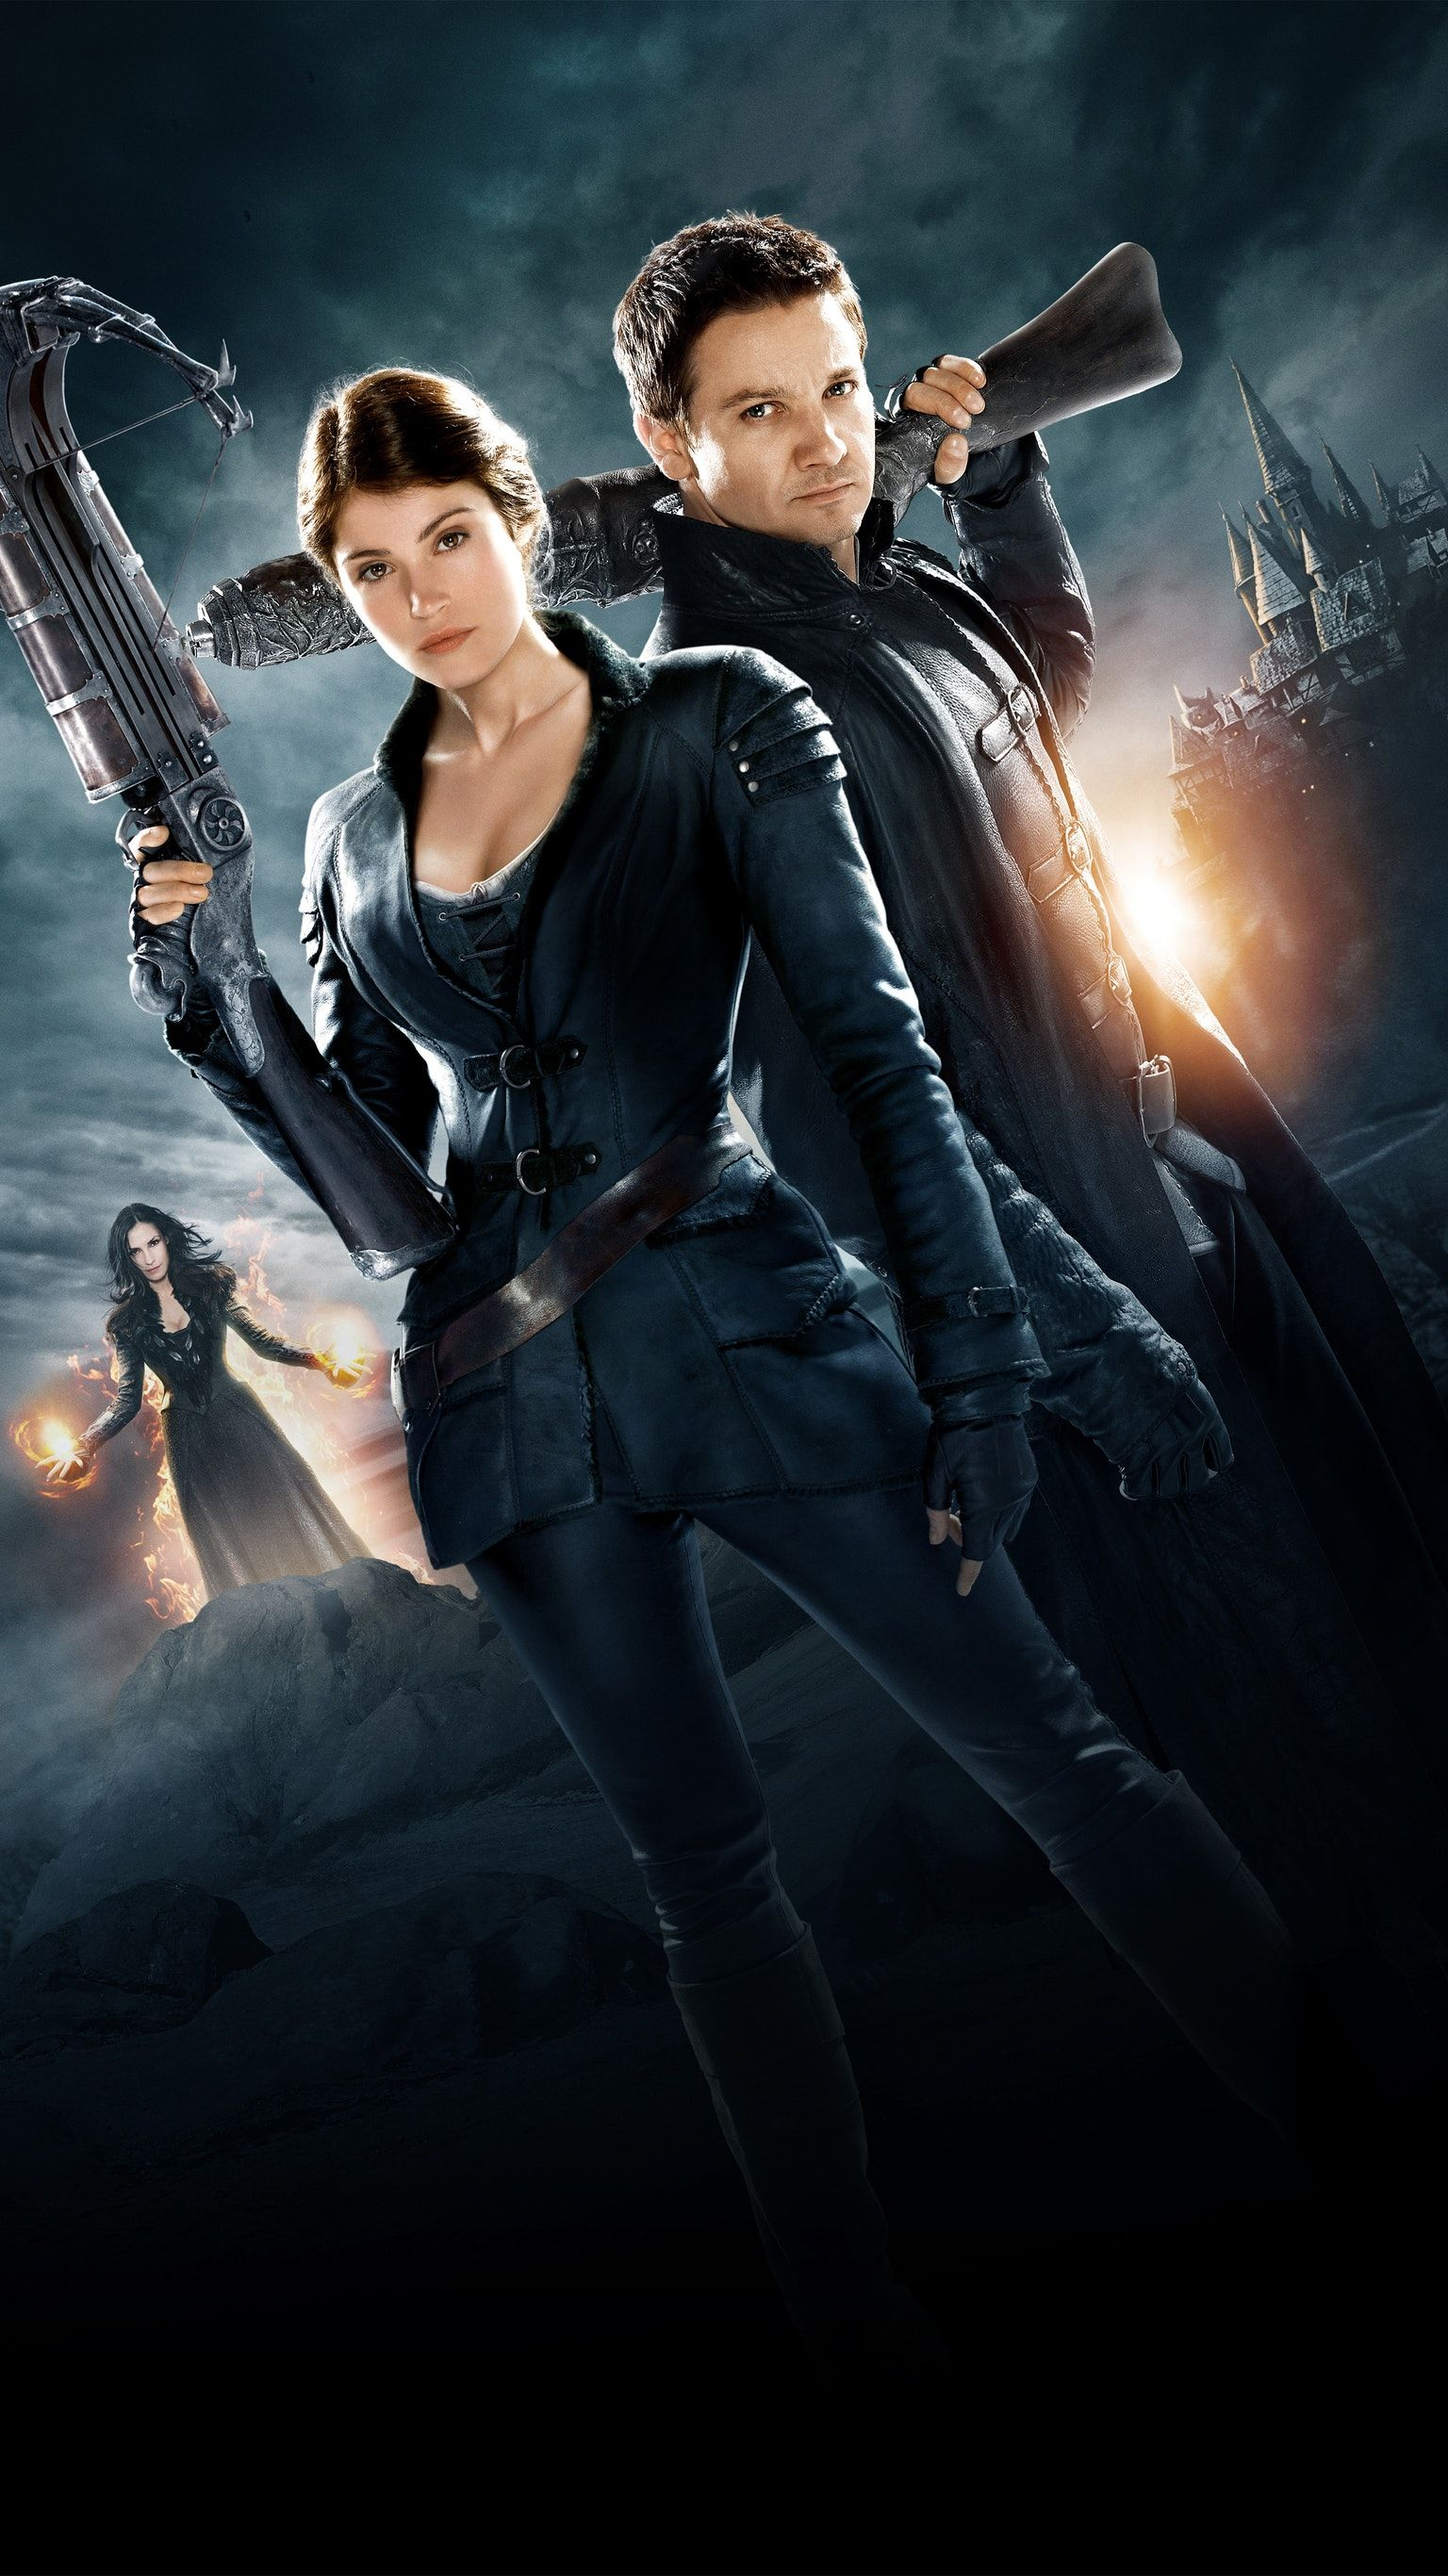 Hansel Gretel Witch Hunters 2013 Phone Wallpaper Moviemania Movie Covers Hunter Movie Full Movies Online Free